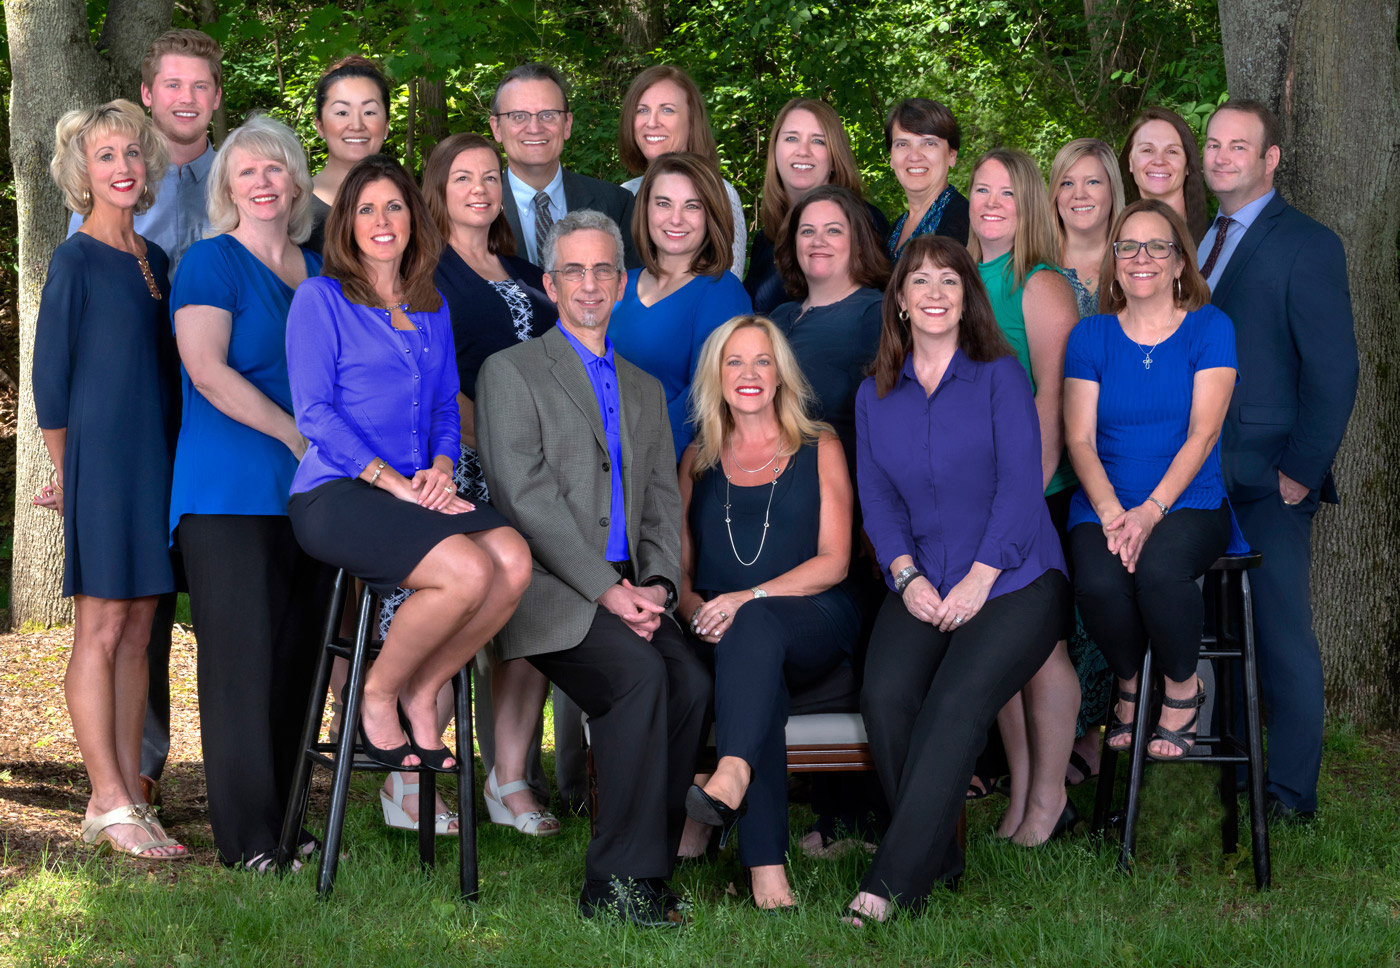 group photography outside for business companies